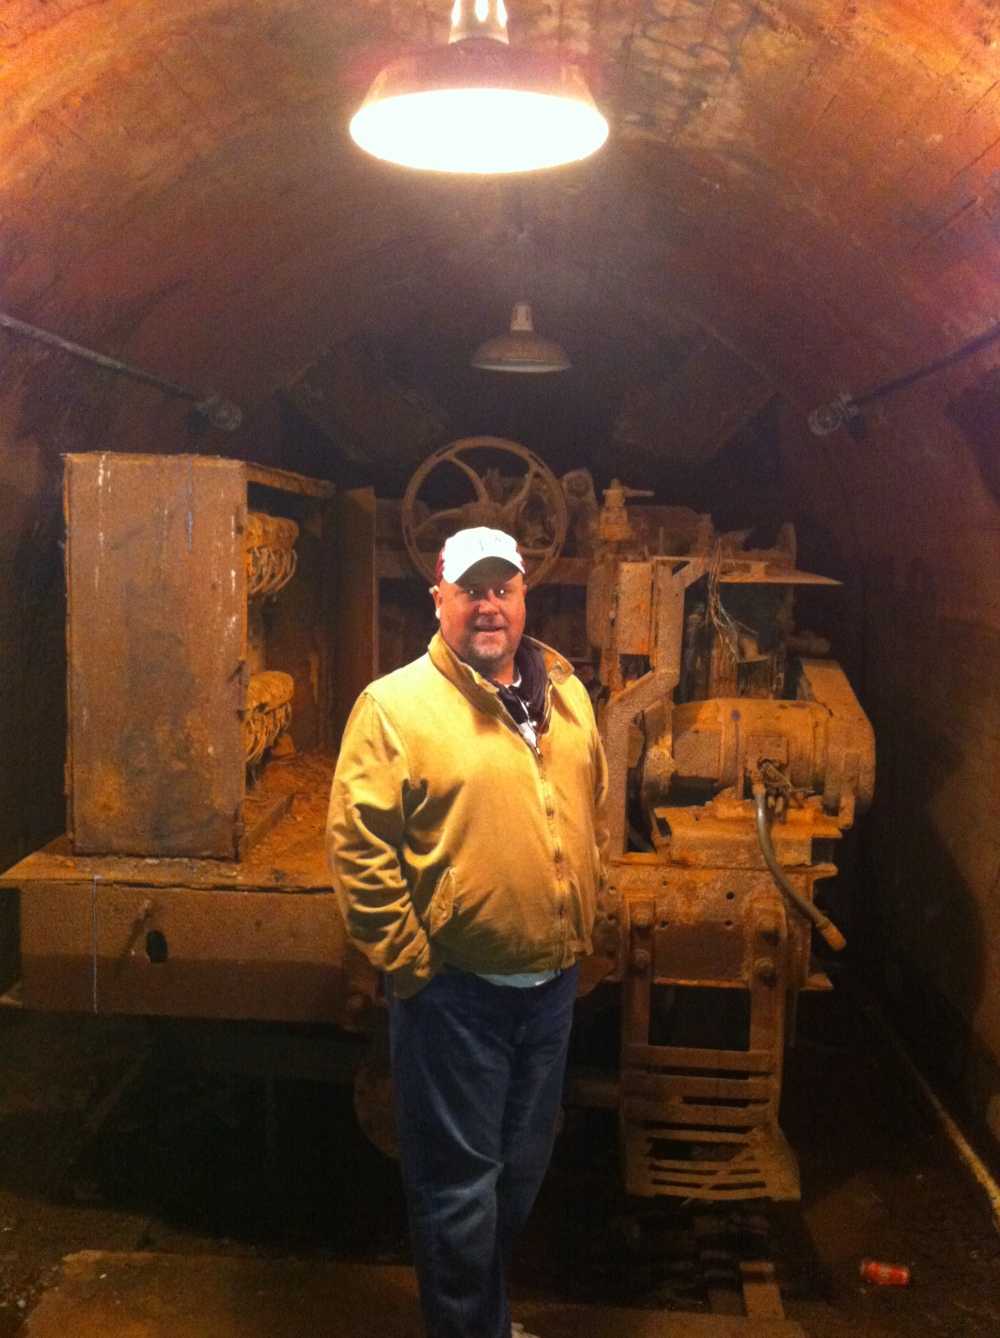 jamie-in-the-tunnel-at-the-sloss-furnace